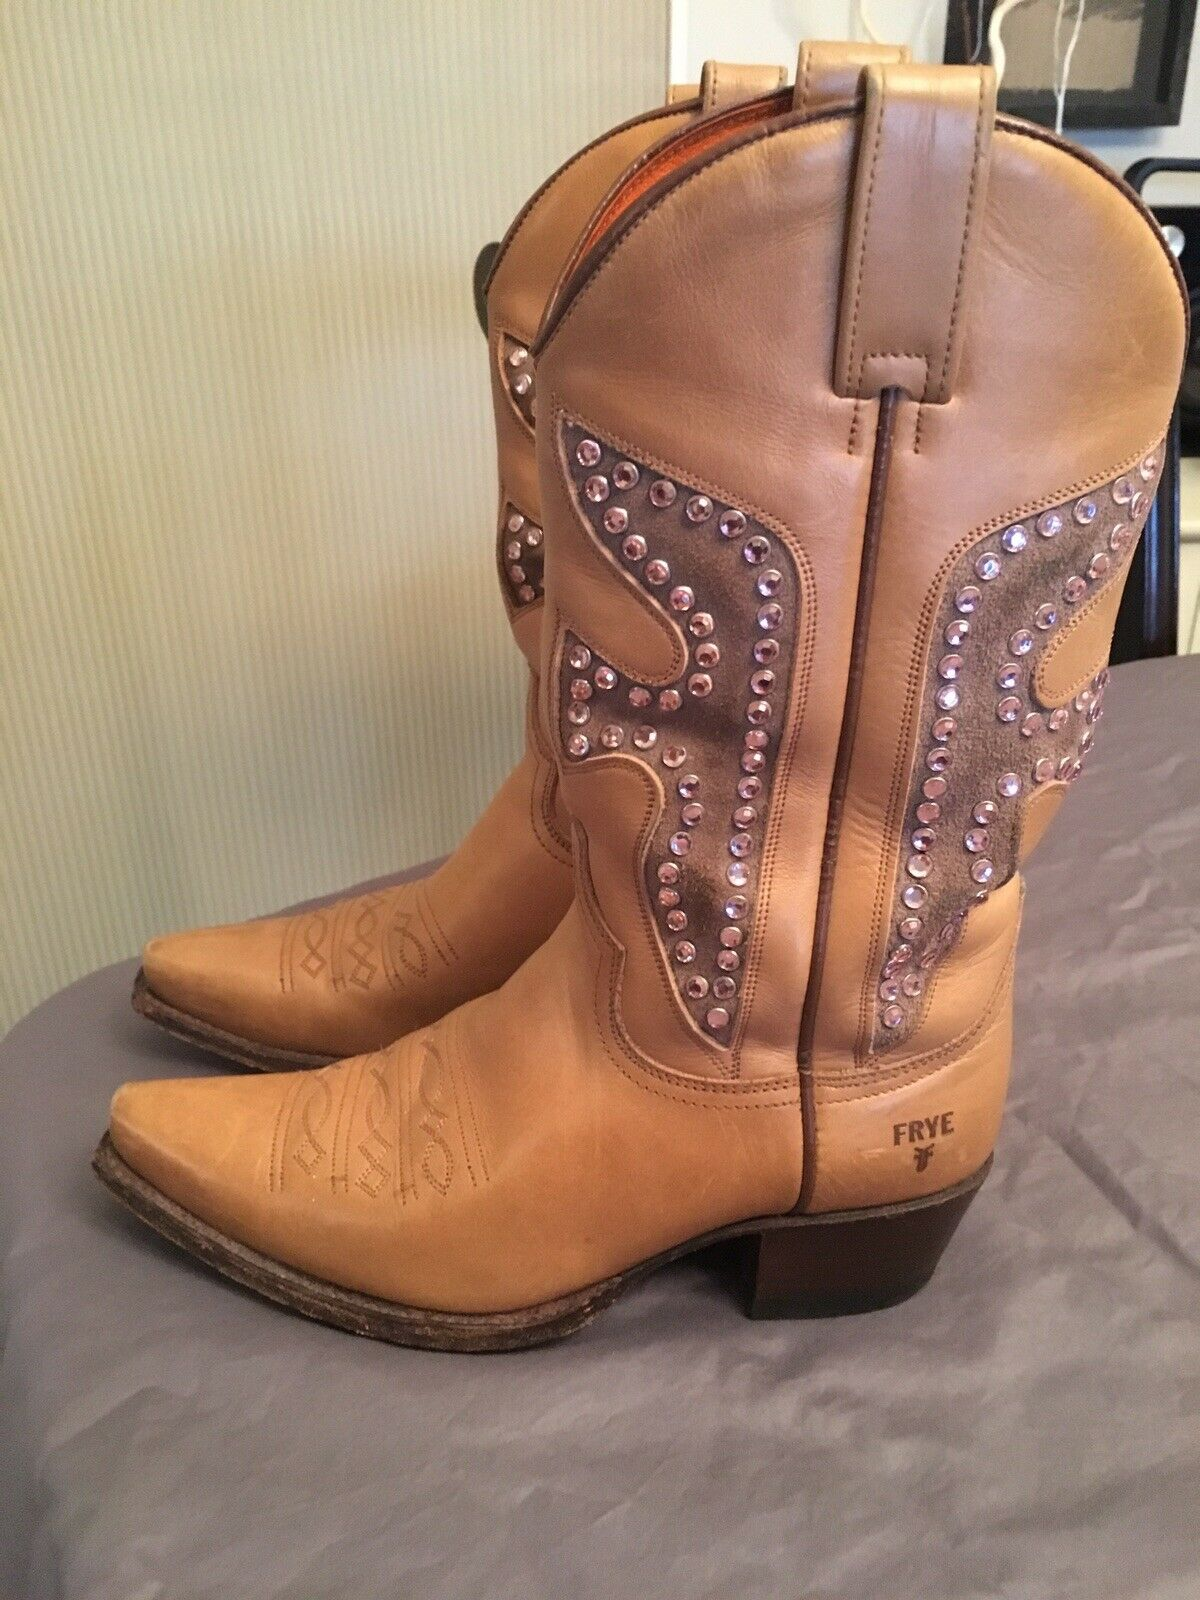 Frye Daisy Duke Studded Rhinestone Tan Antique gold Western Boots shoes 7